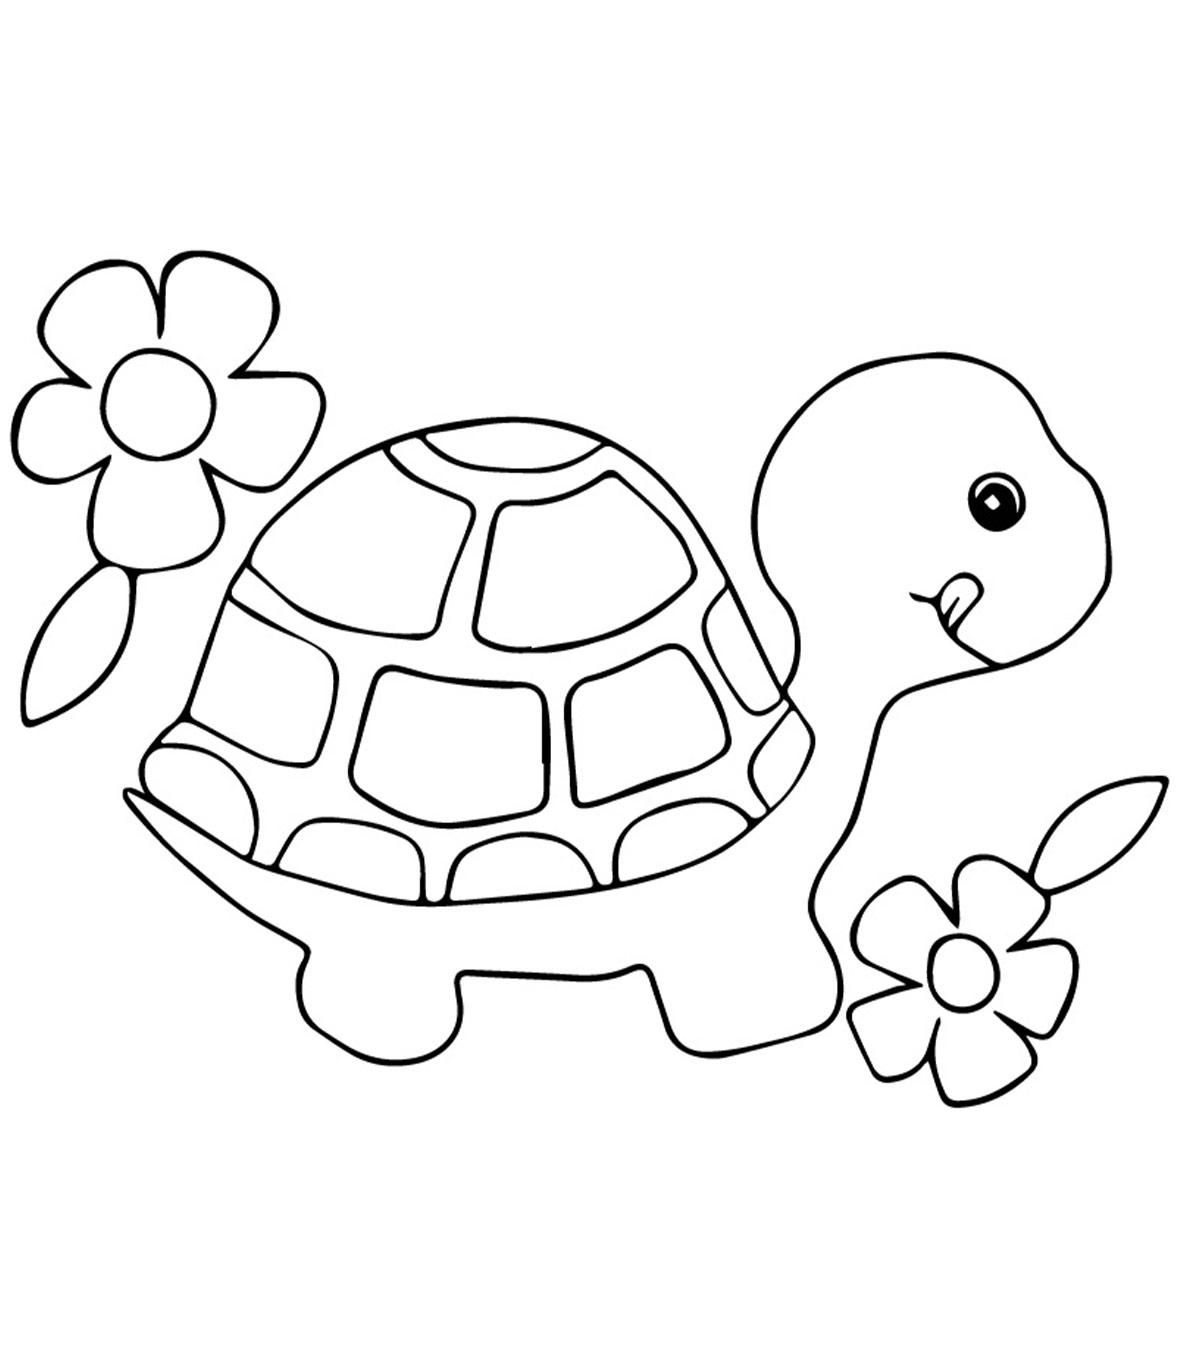 16 Coloring Page About Turtle Turtle Coloring Pages Cute Coloring Pages Baby Coloring Pages